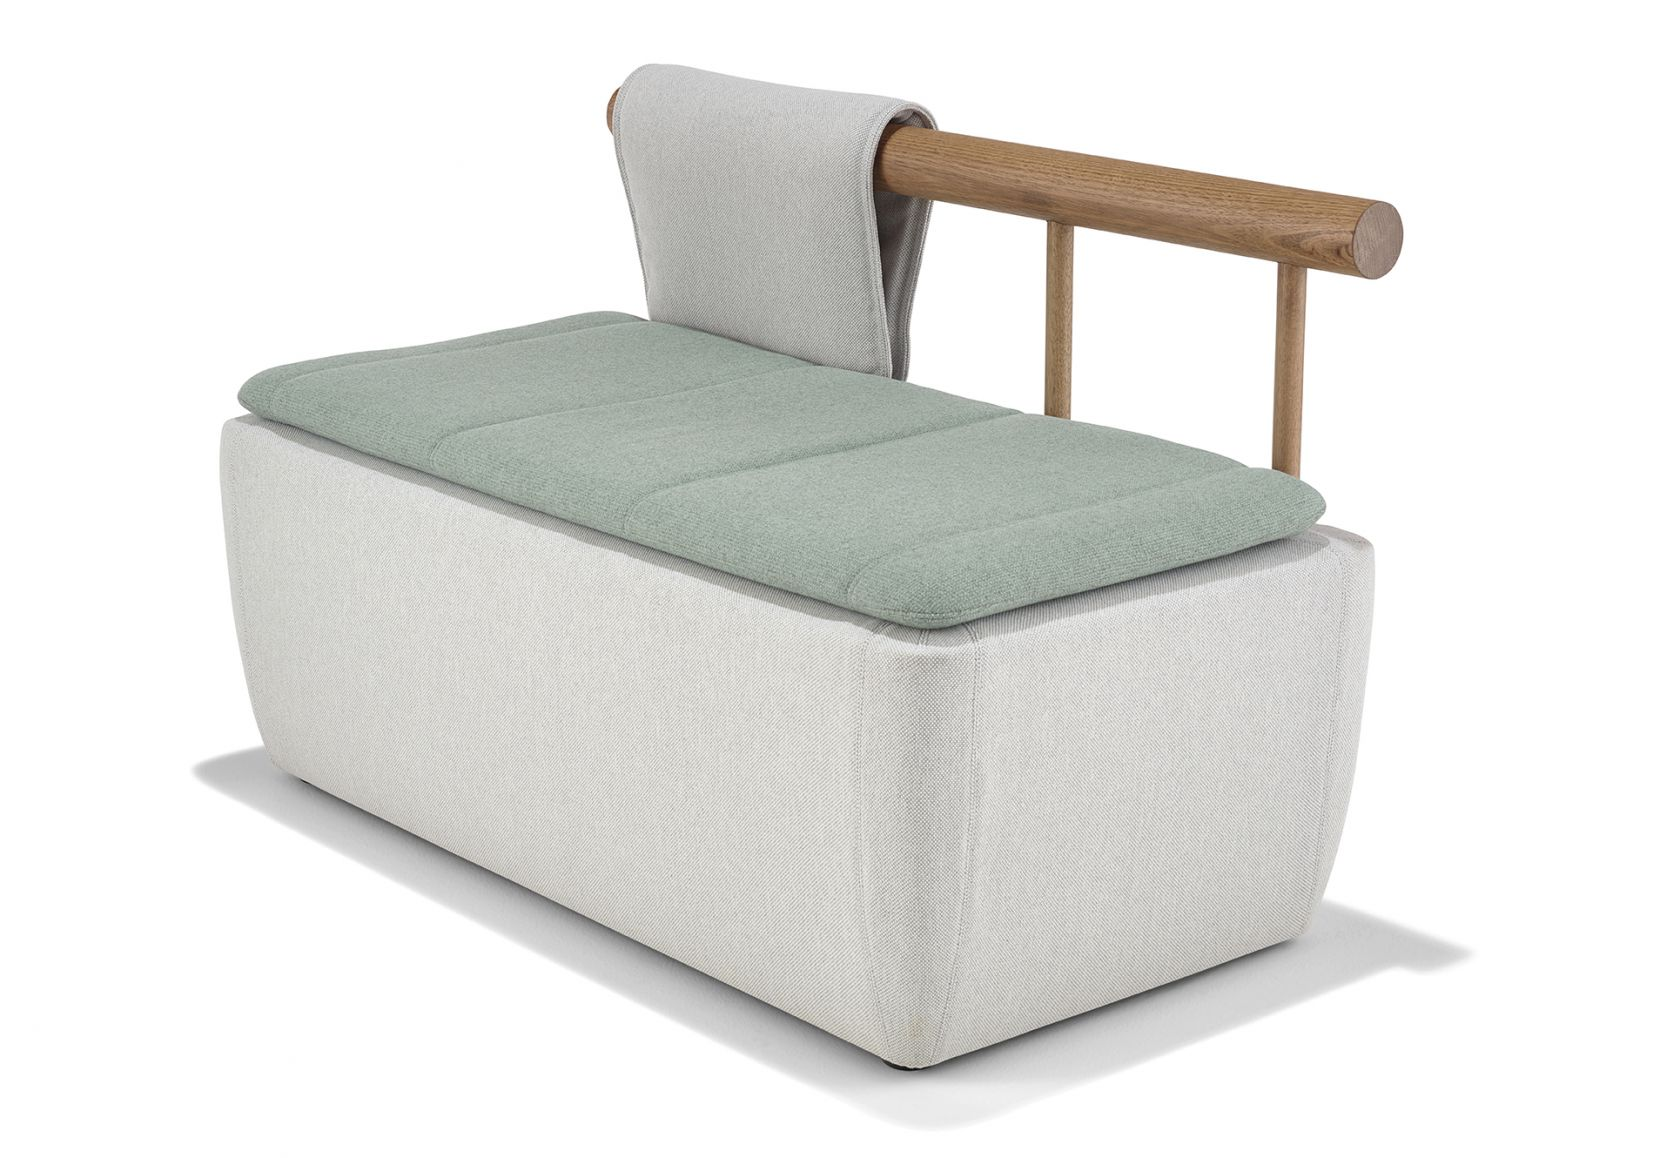 Toku 2 Seat Bench with Single Backrest Blanket